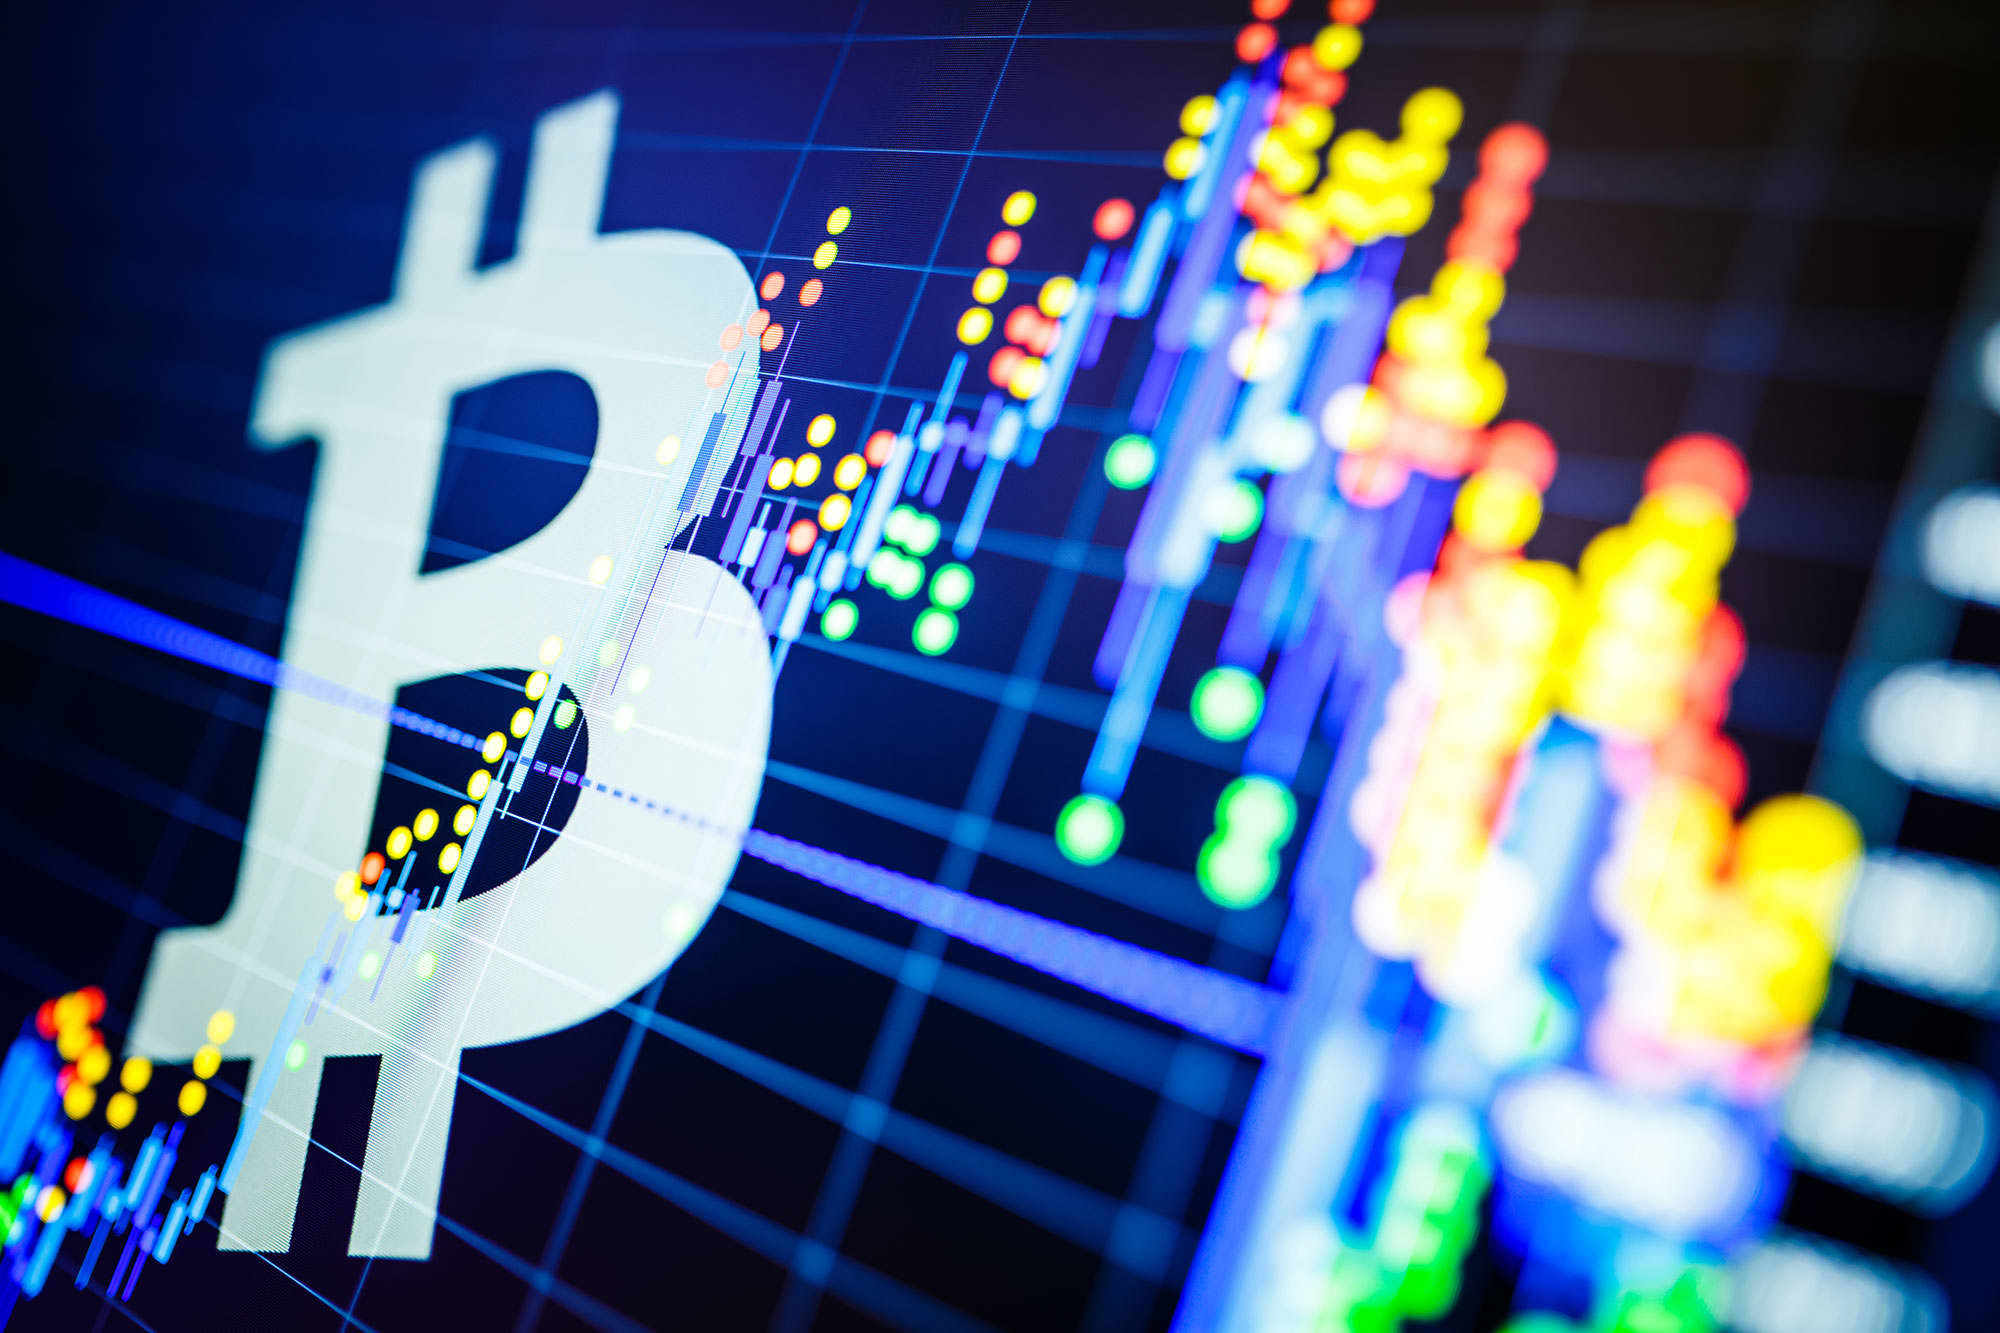 Bitcoin hits $1 trillion in market value as cryptocurrency surge continues